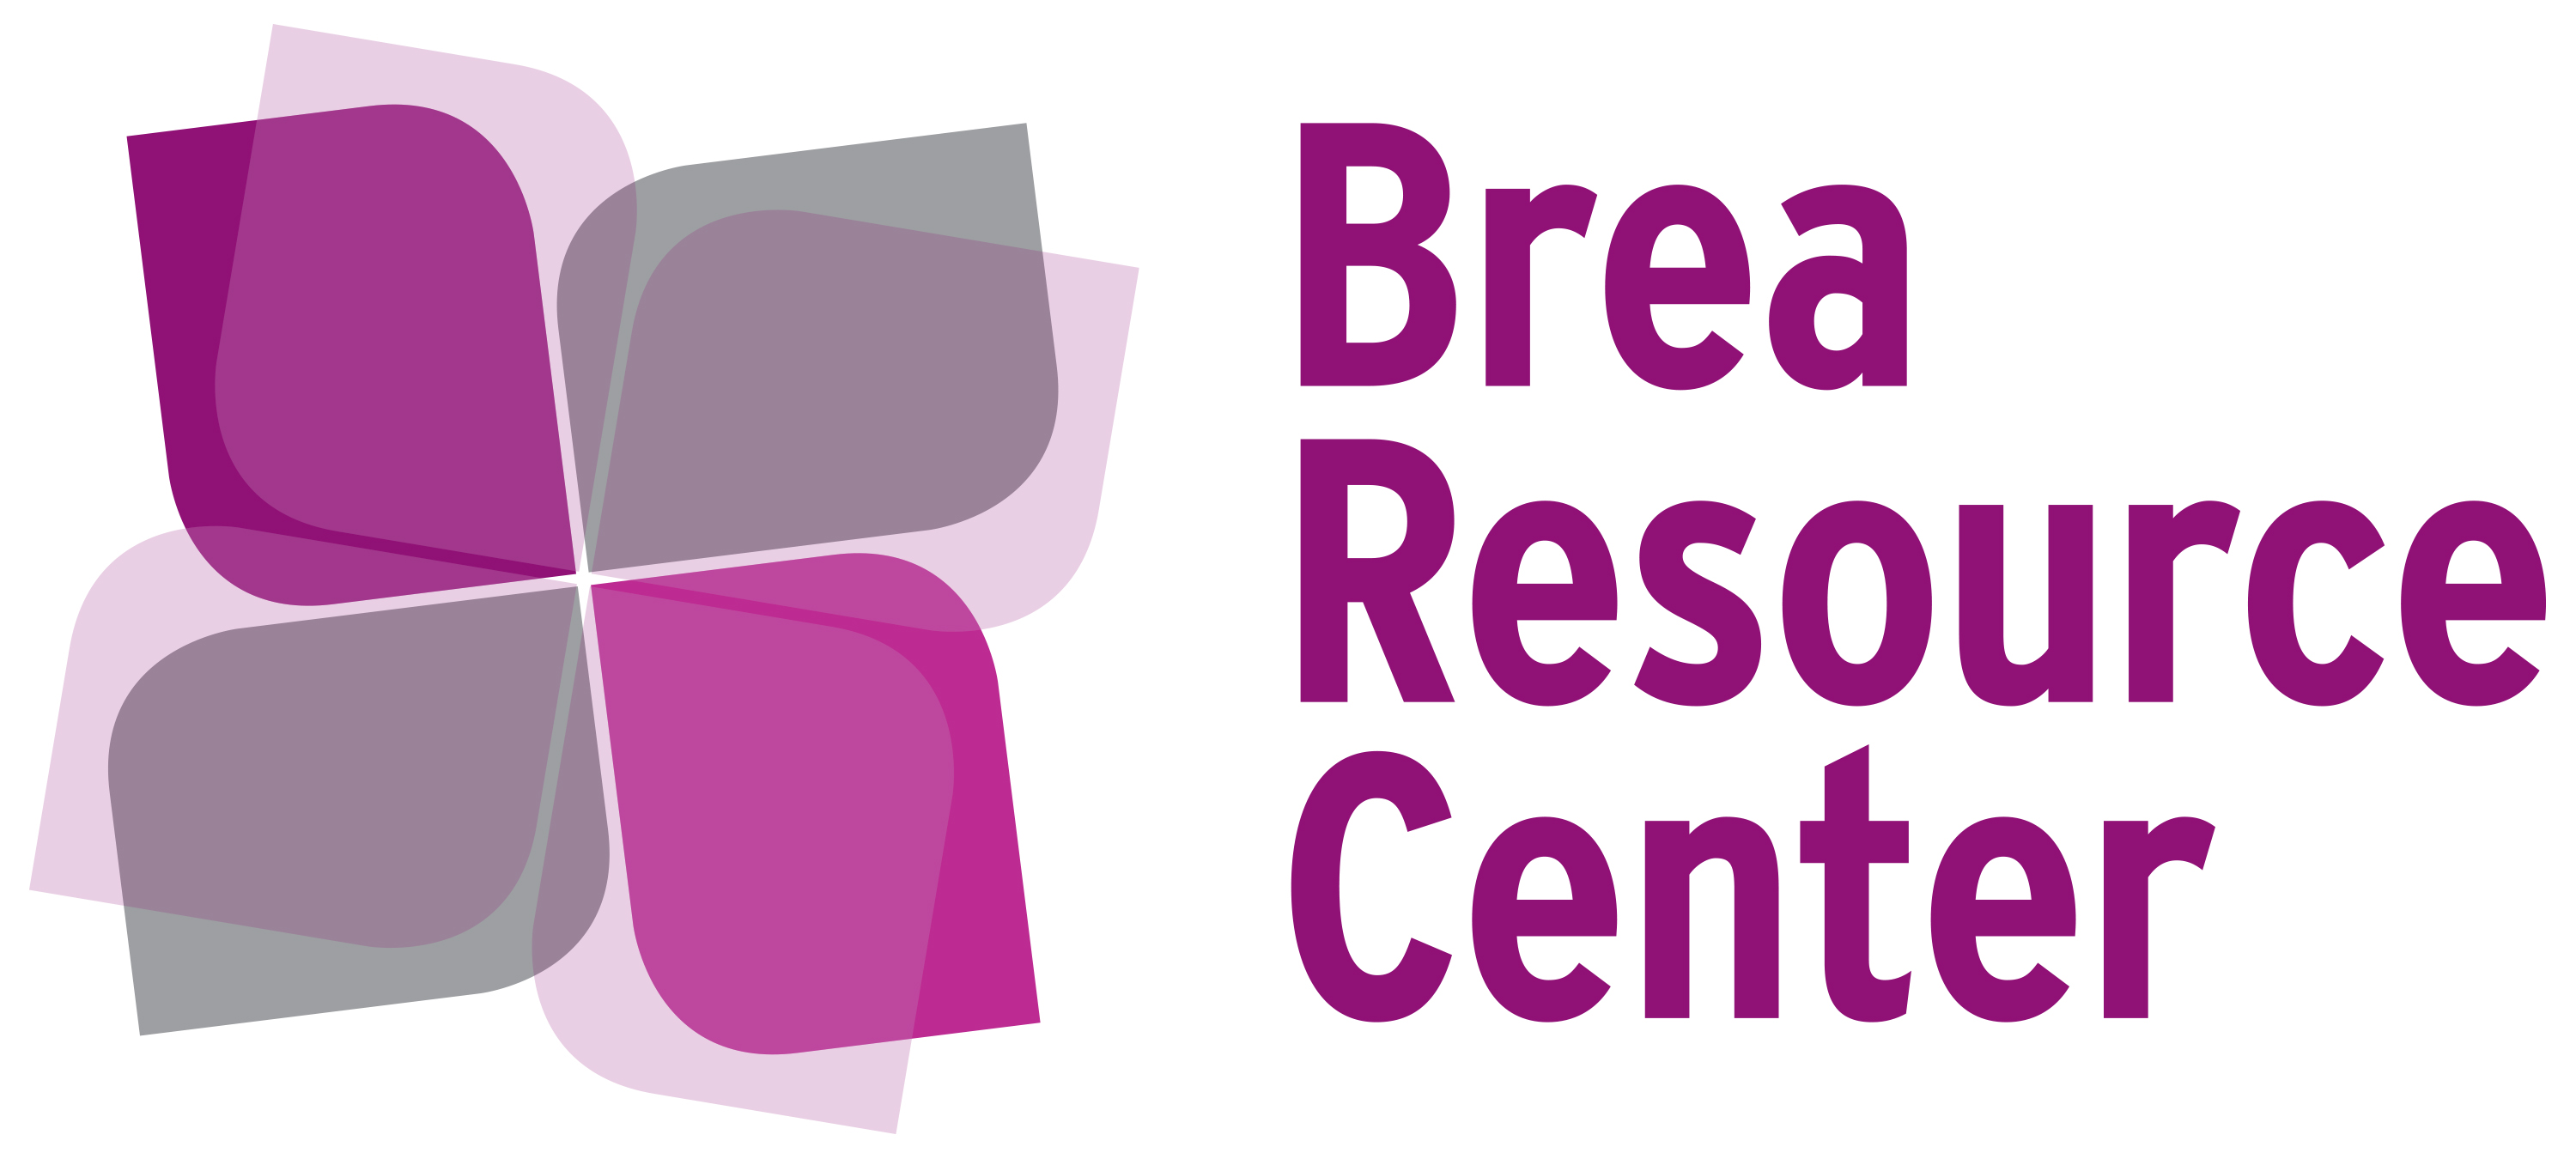 brea resource center logo.jpg